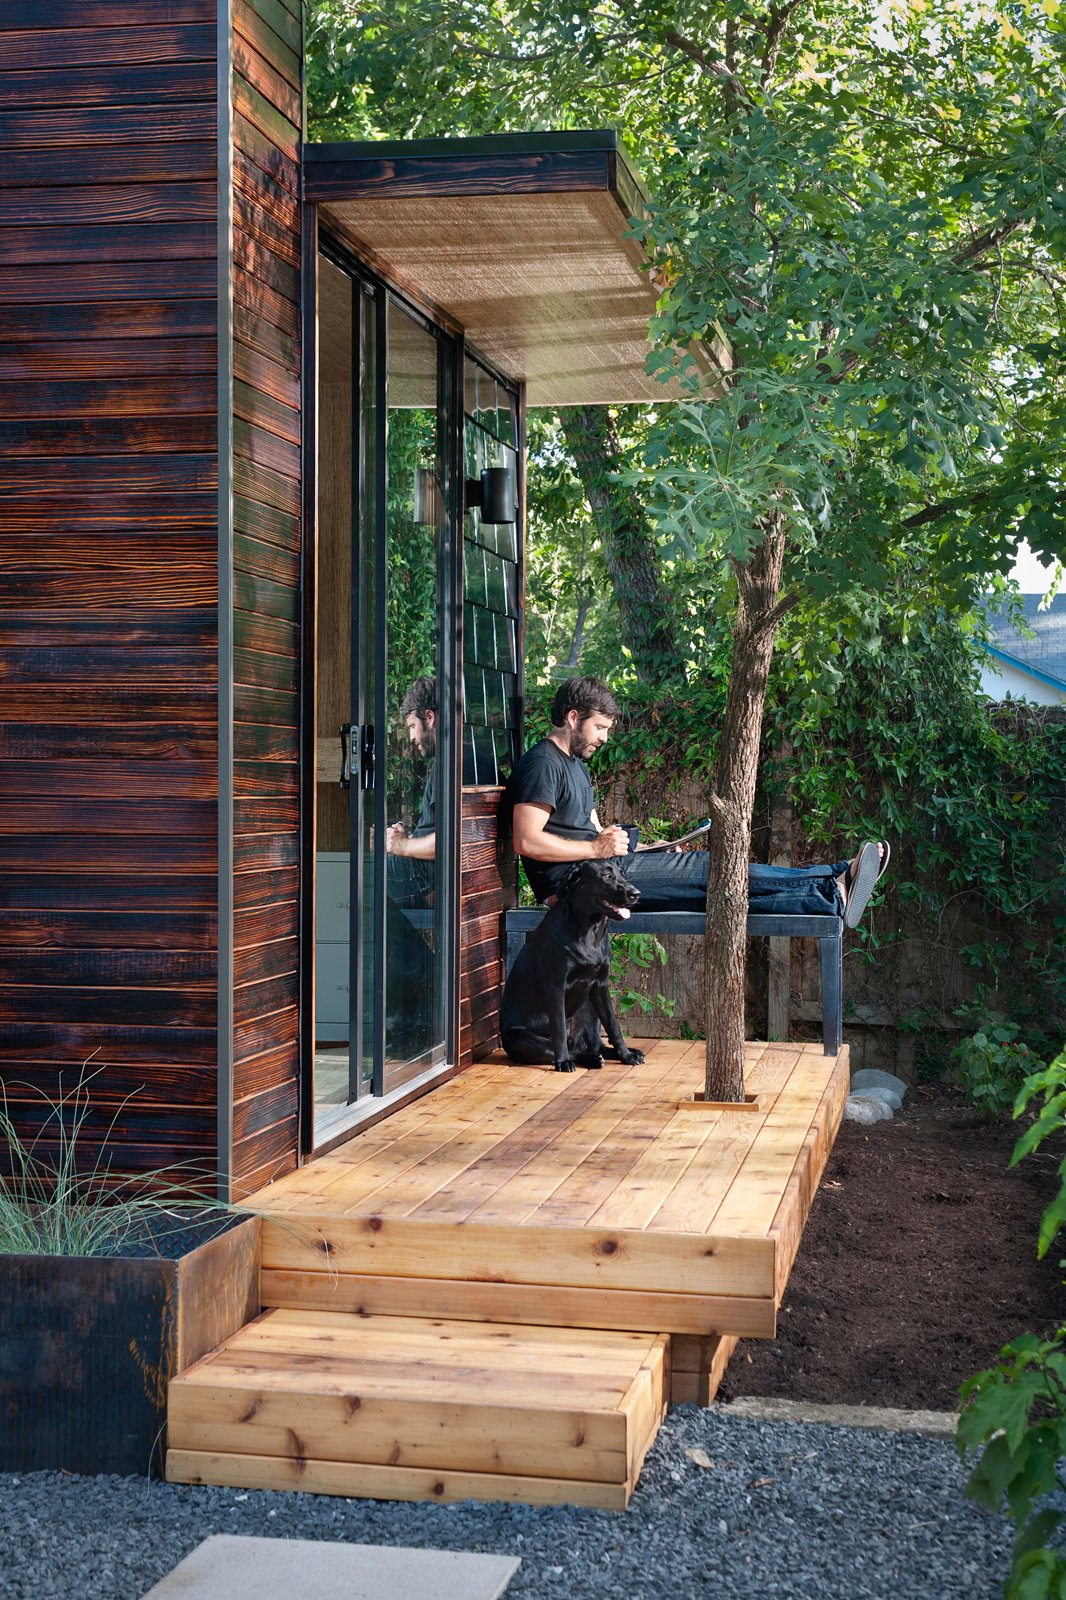 Studio owner Joey Williams uses his space to work from home as an Austin-based media director. Prefab by Laurie Vanderboom